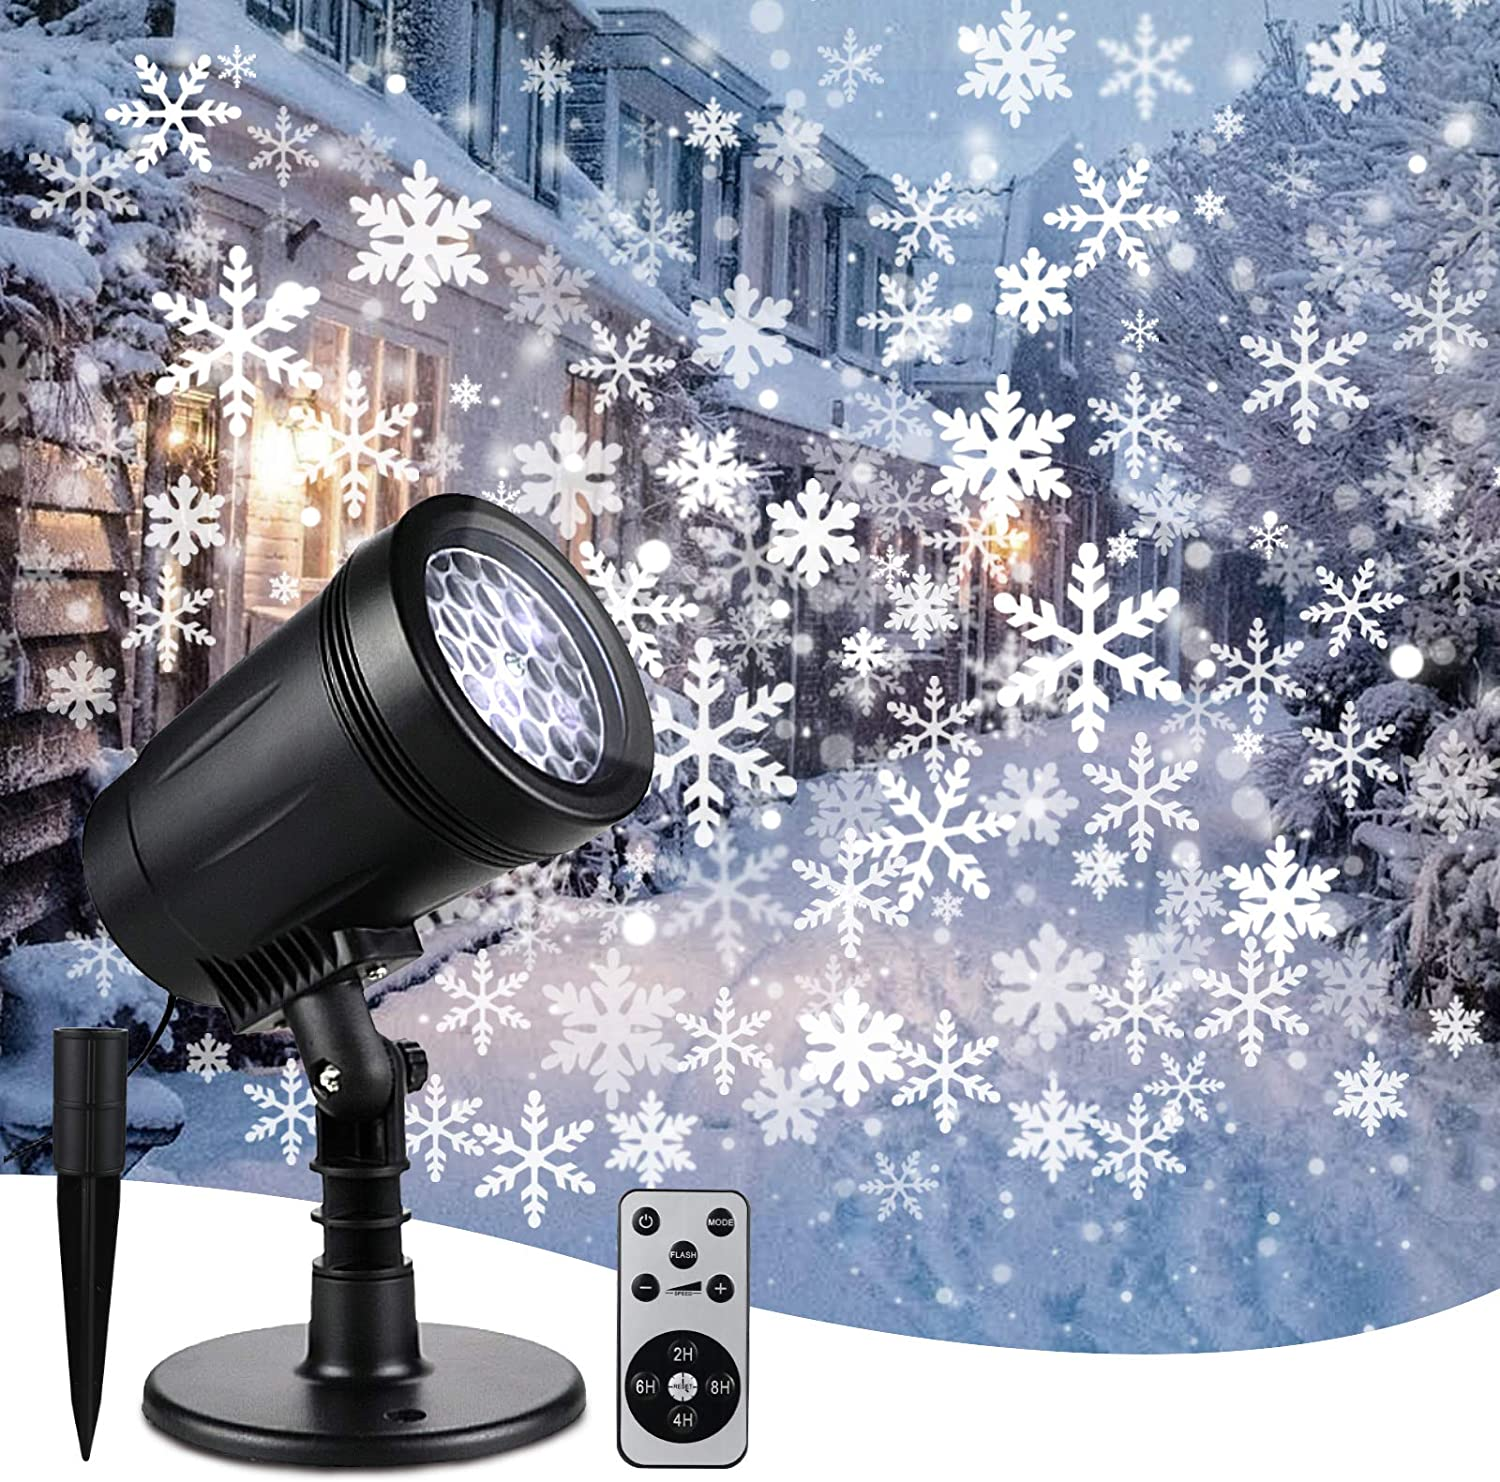 Christmas Snowflake Projector Lights, Waterproof LED Projector Outdoor&Indoor, White Adjustable Snowflake Projector with Upgrade Wireless Remote Control, Spotlights Decor, Holiday, Wedding, Xmas Party